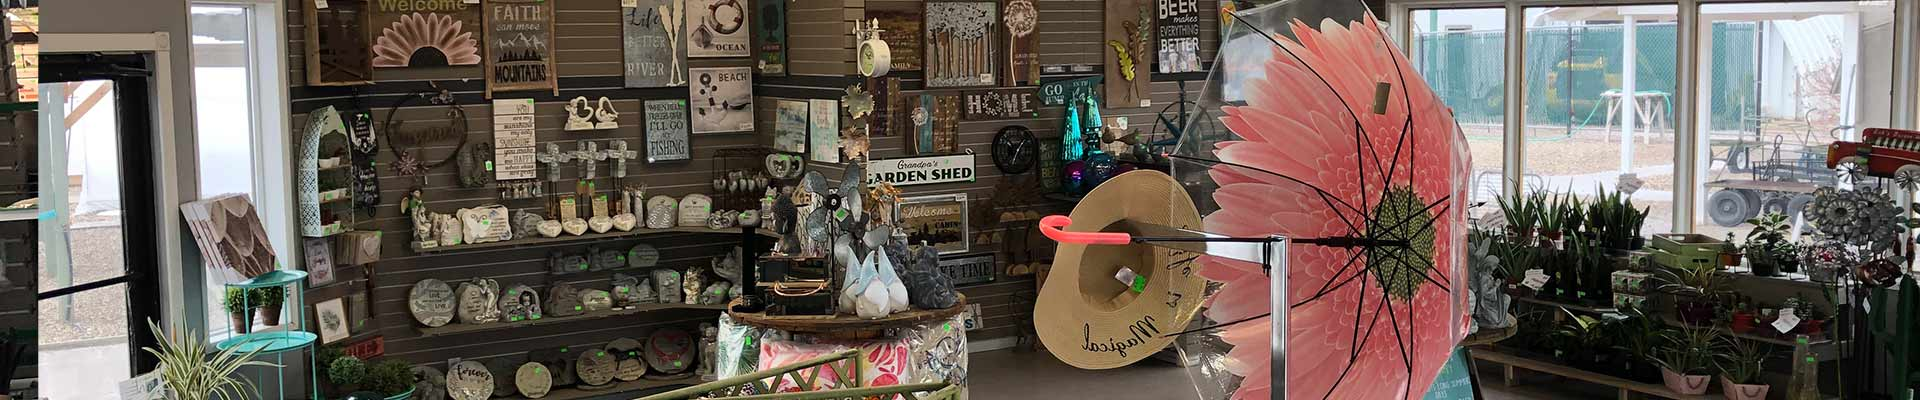 Decor Gifts - Keon Garden Centre - Moose Jaw